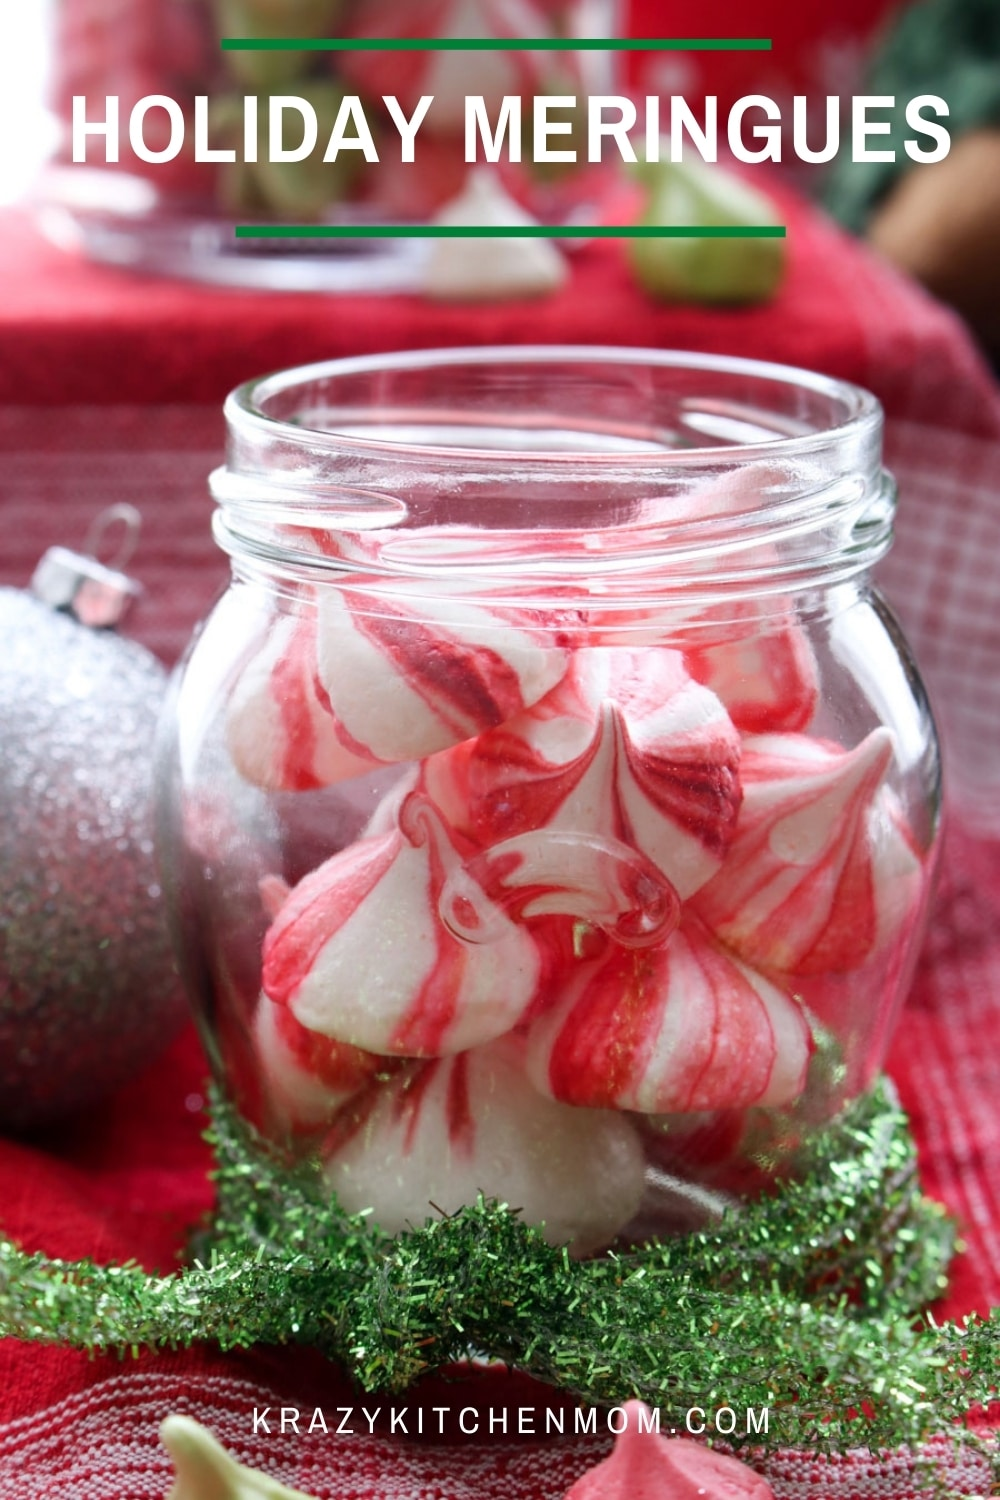 Crisp and snappy on the outside, light and fluffy on the inside, these pillowy little treats light up any holiday table. via @krazykitchenmom